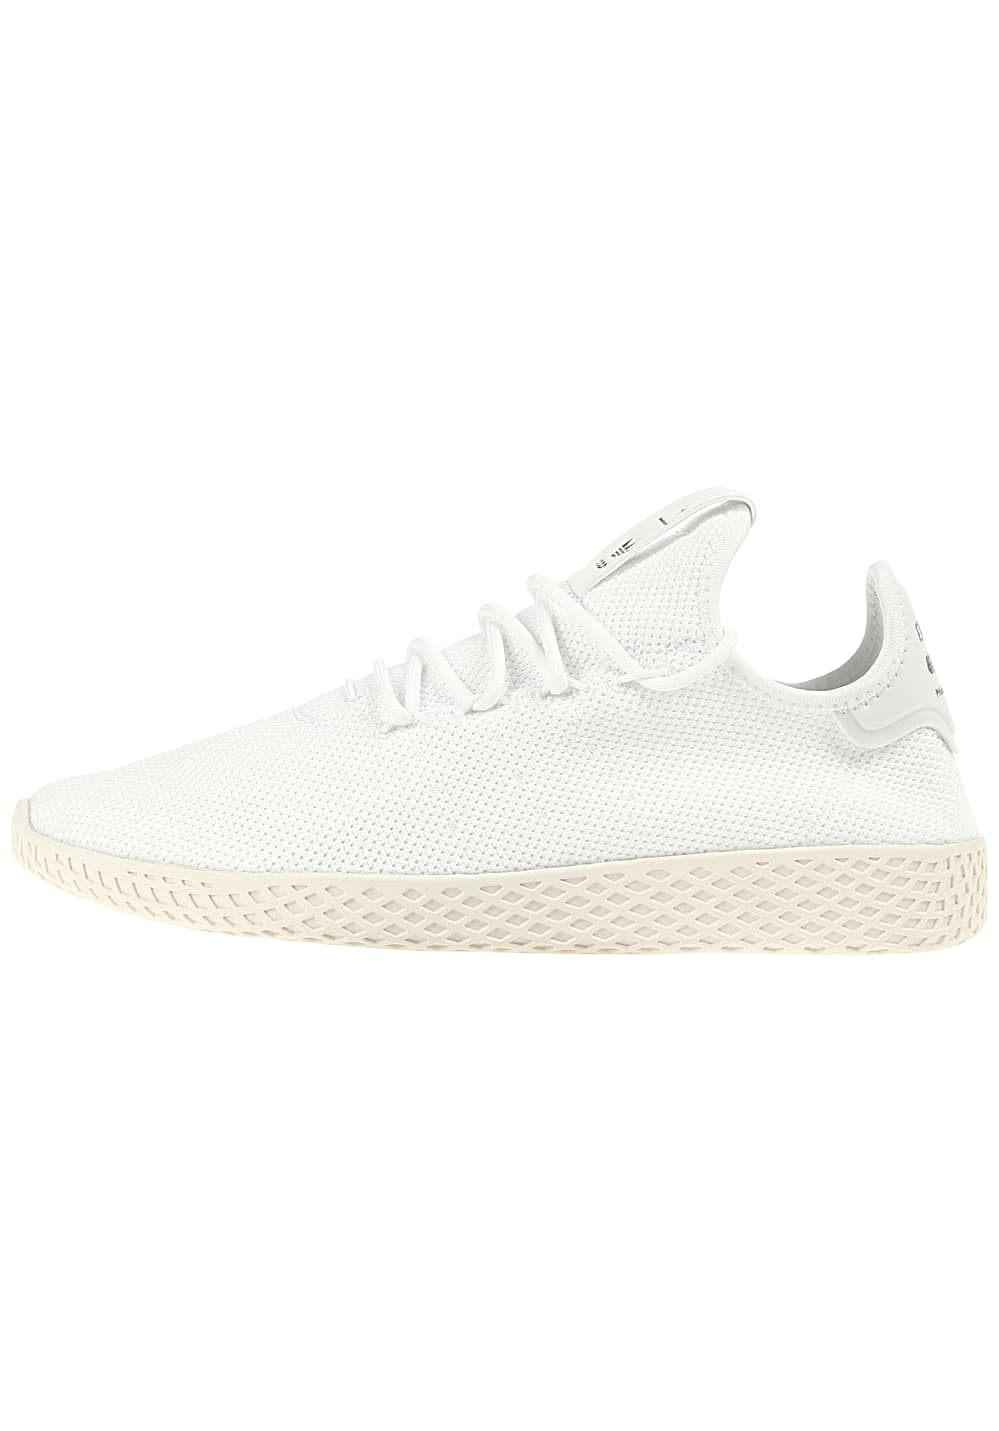 ADIDAS ORIGINALS Pharrell Williams Tennis HU Zapatillas